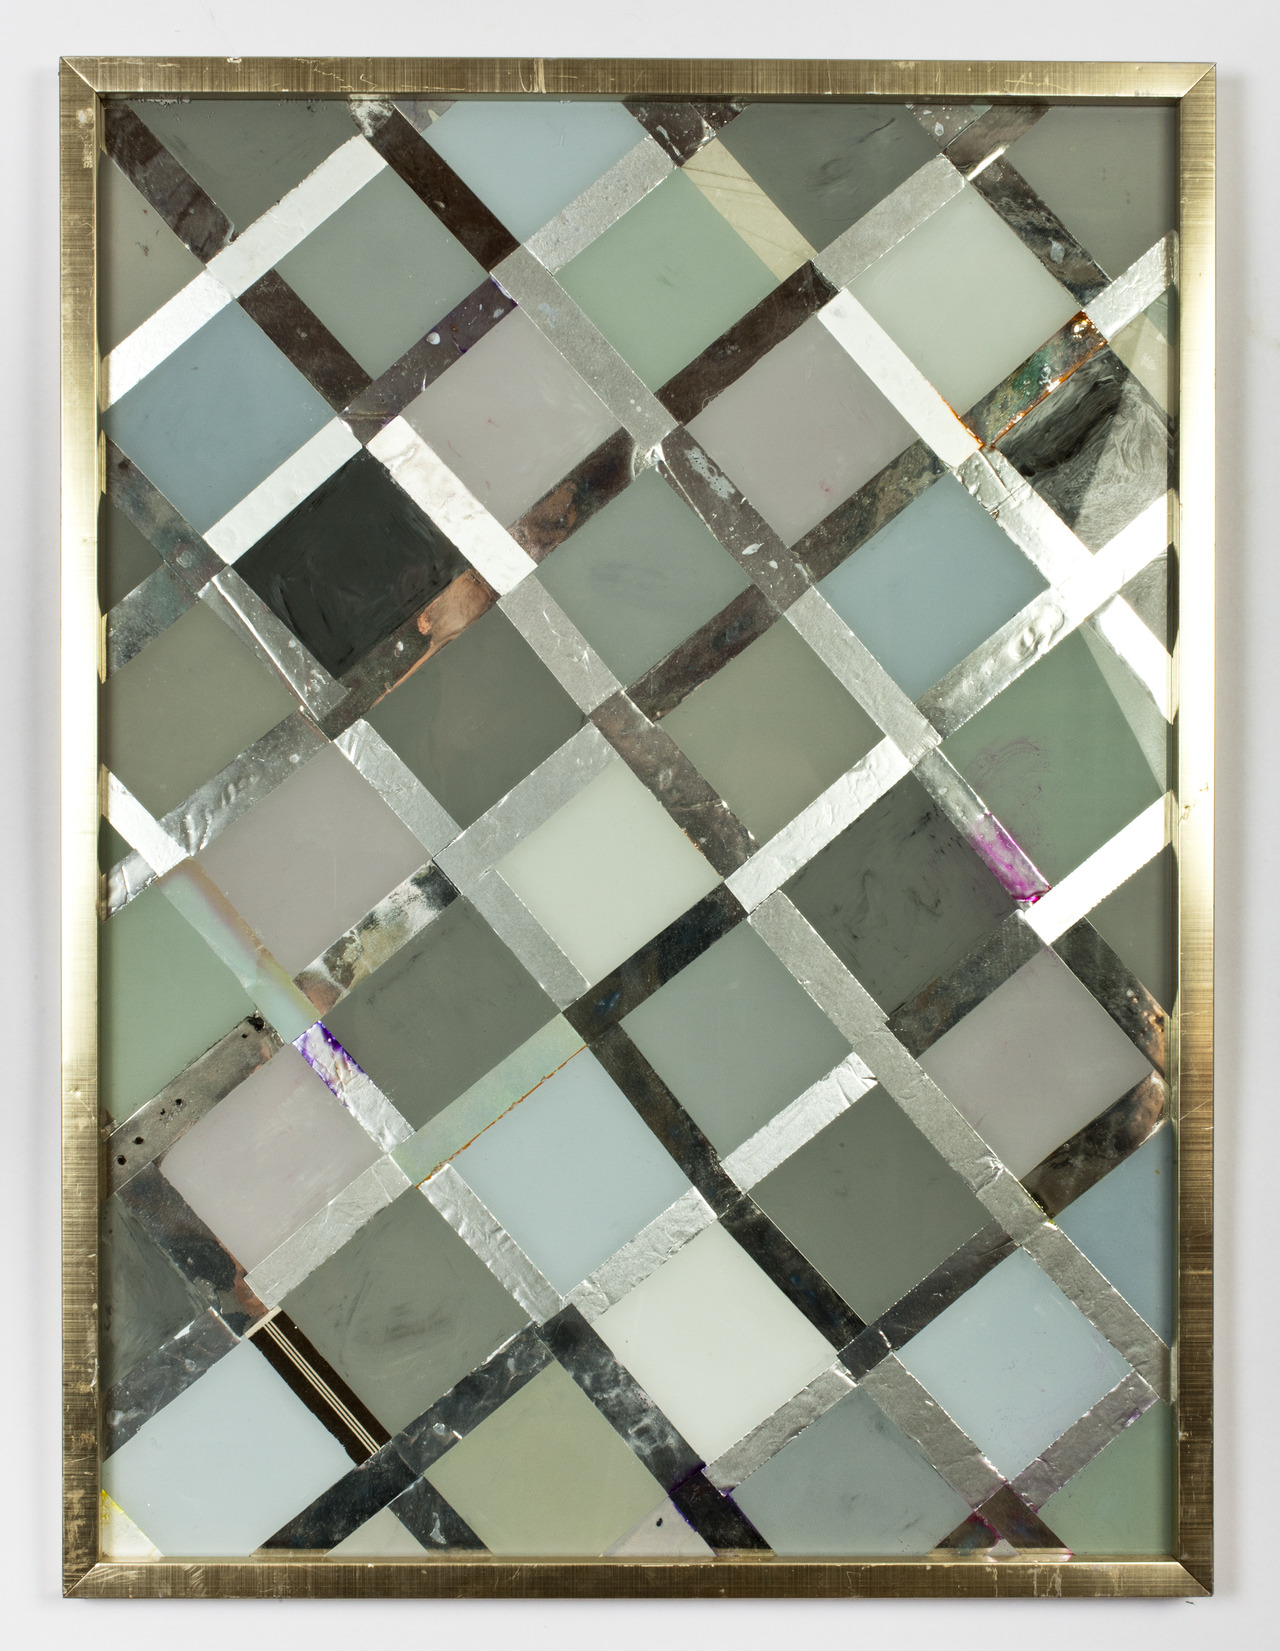 nicecollection :     Brian Belott - Refrigerator, reverse glass painting, collaged various foils, 2012